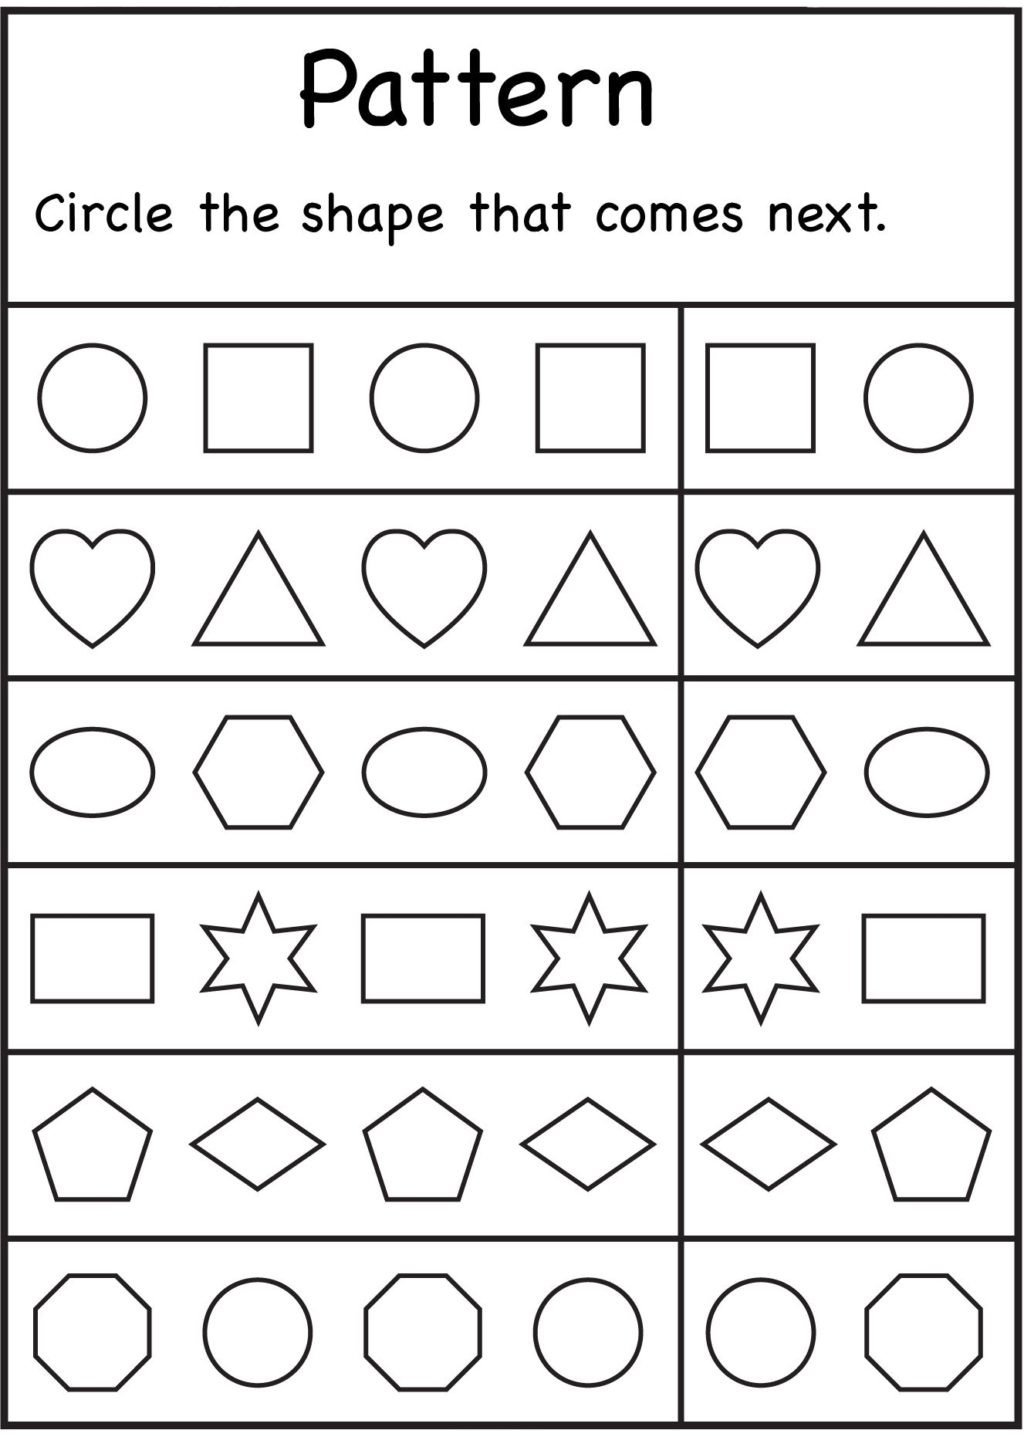 Preschool Math Worksheets Pdf Worksheet Kindergarten Worksheets Math Preschool